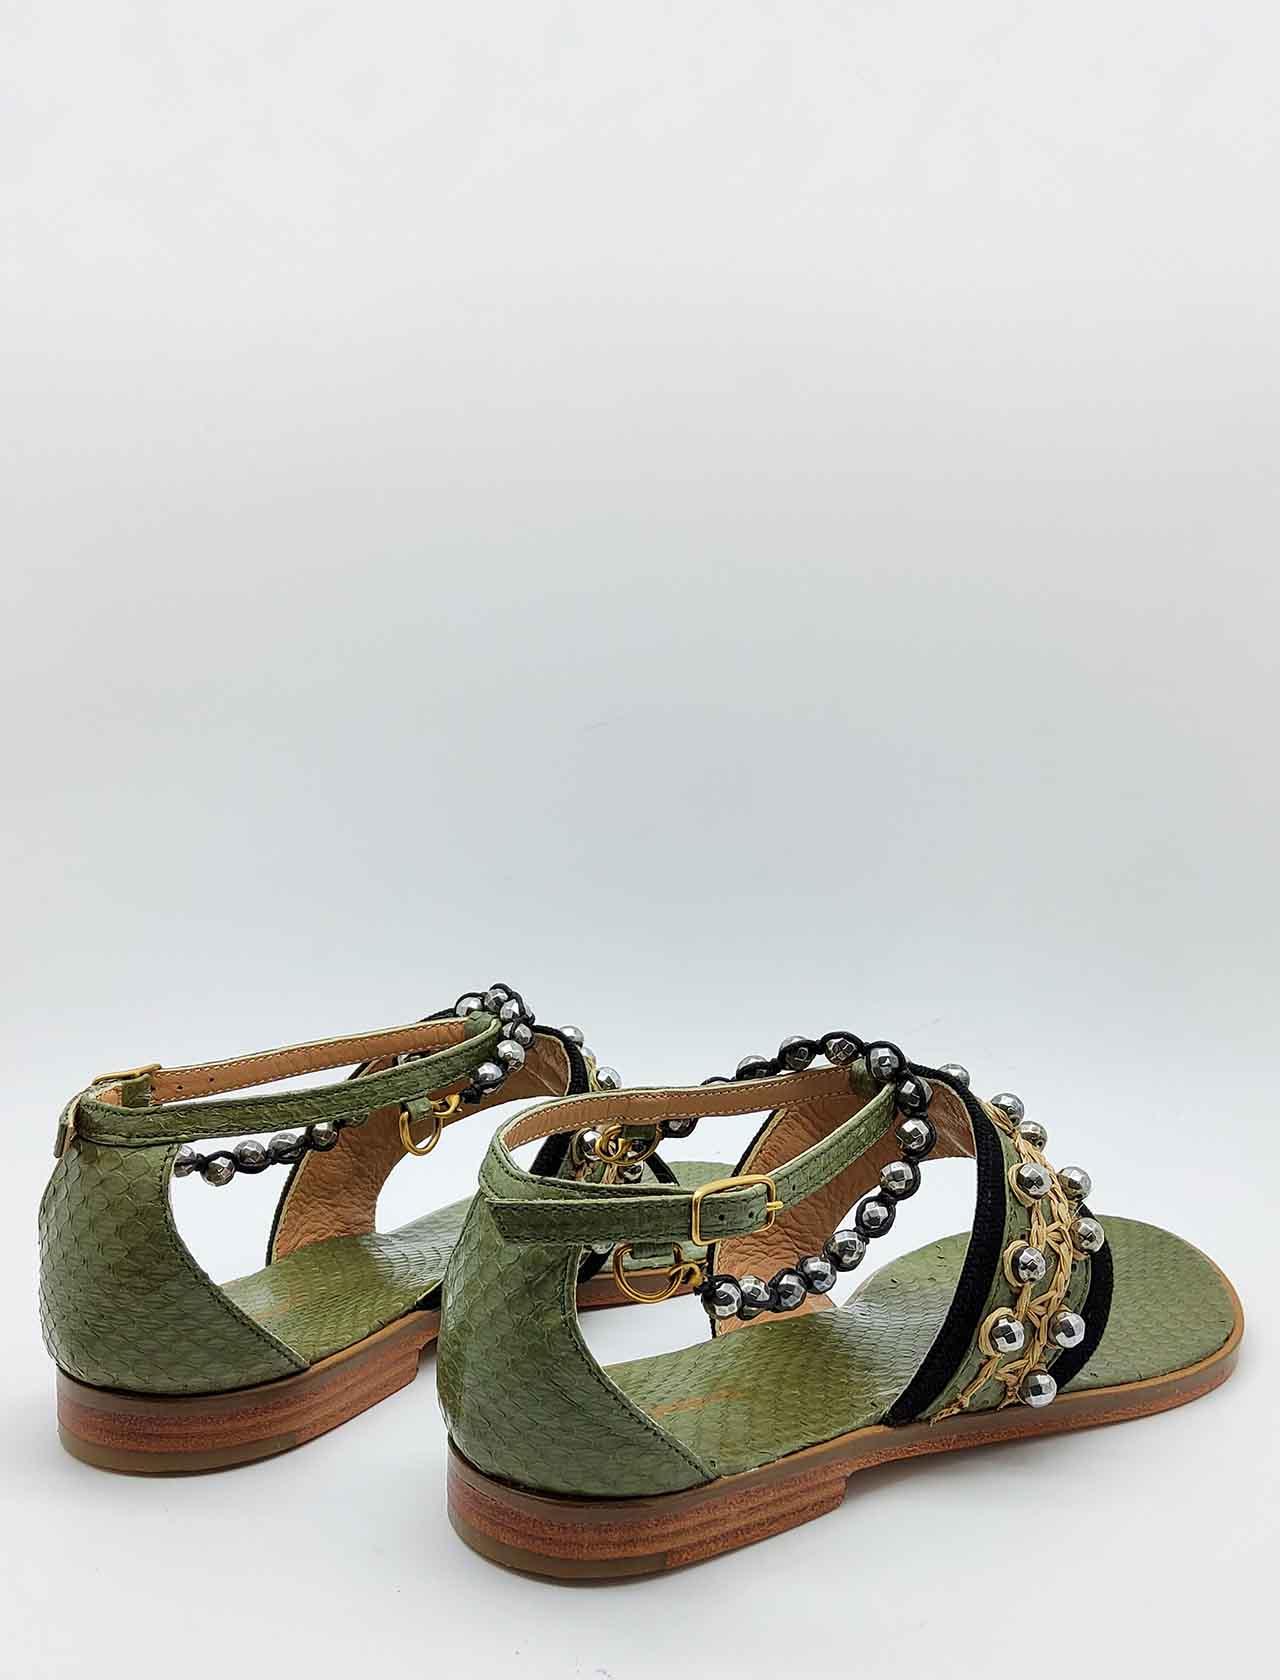 Women's Shoes Sandals Flip Flops Exotic Whipstitch in Leather and Green Leather with Studs Strap and Anklet Maliparmi | Flat sandals | SX047601456B4067